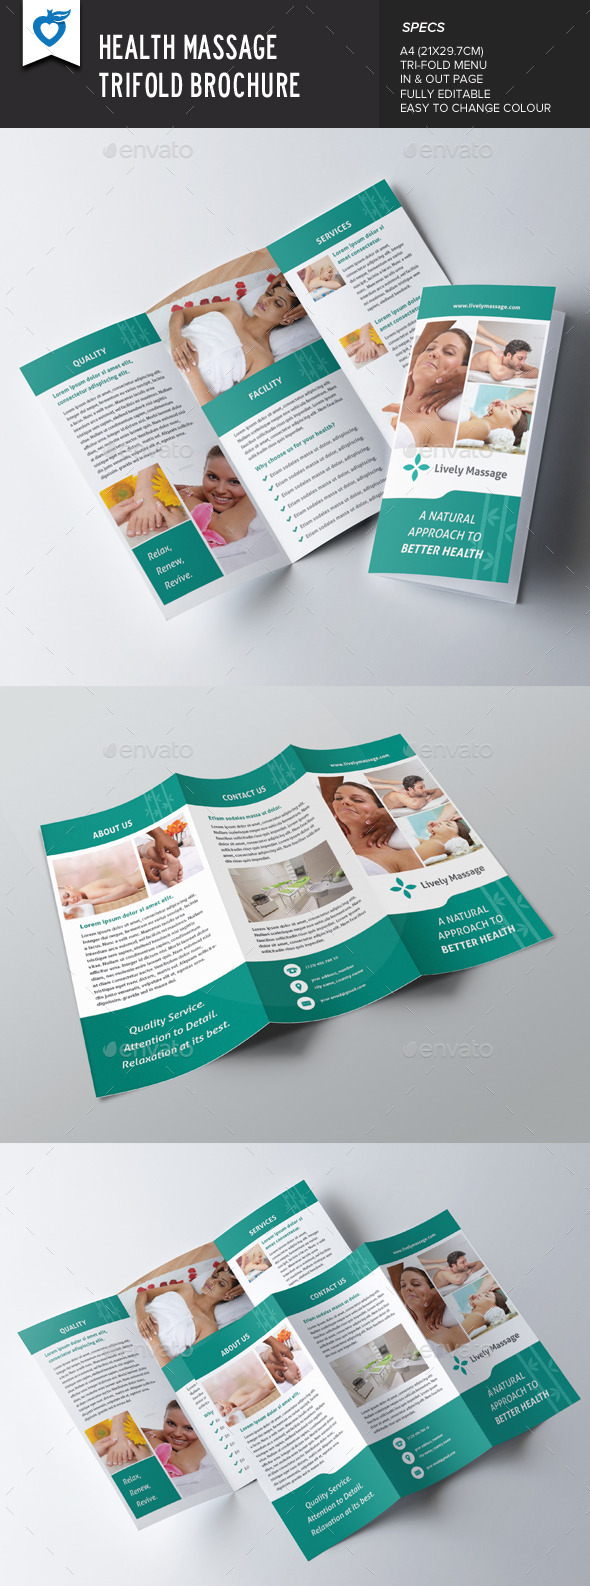 Health Massage Trifold Brochure - Corporate Brochures